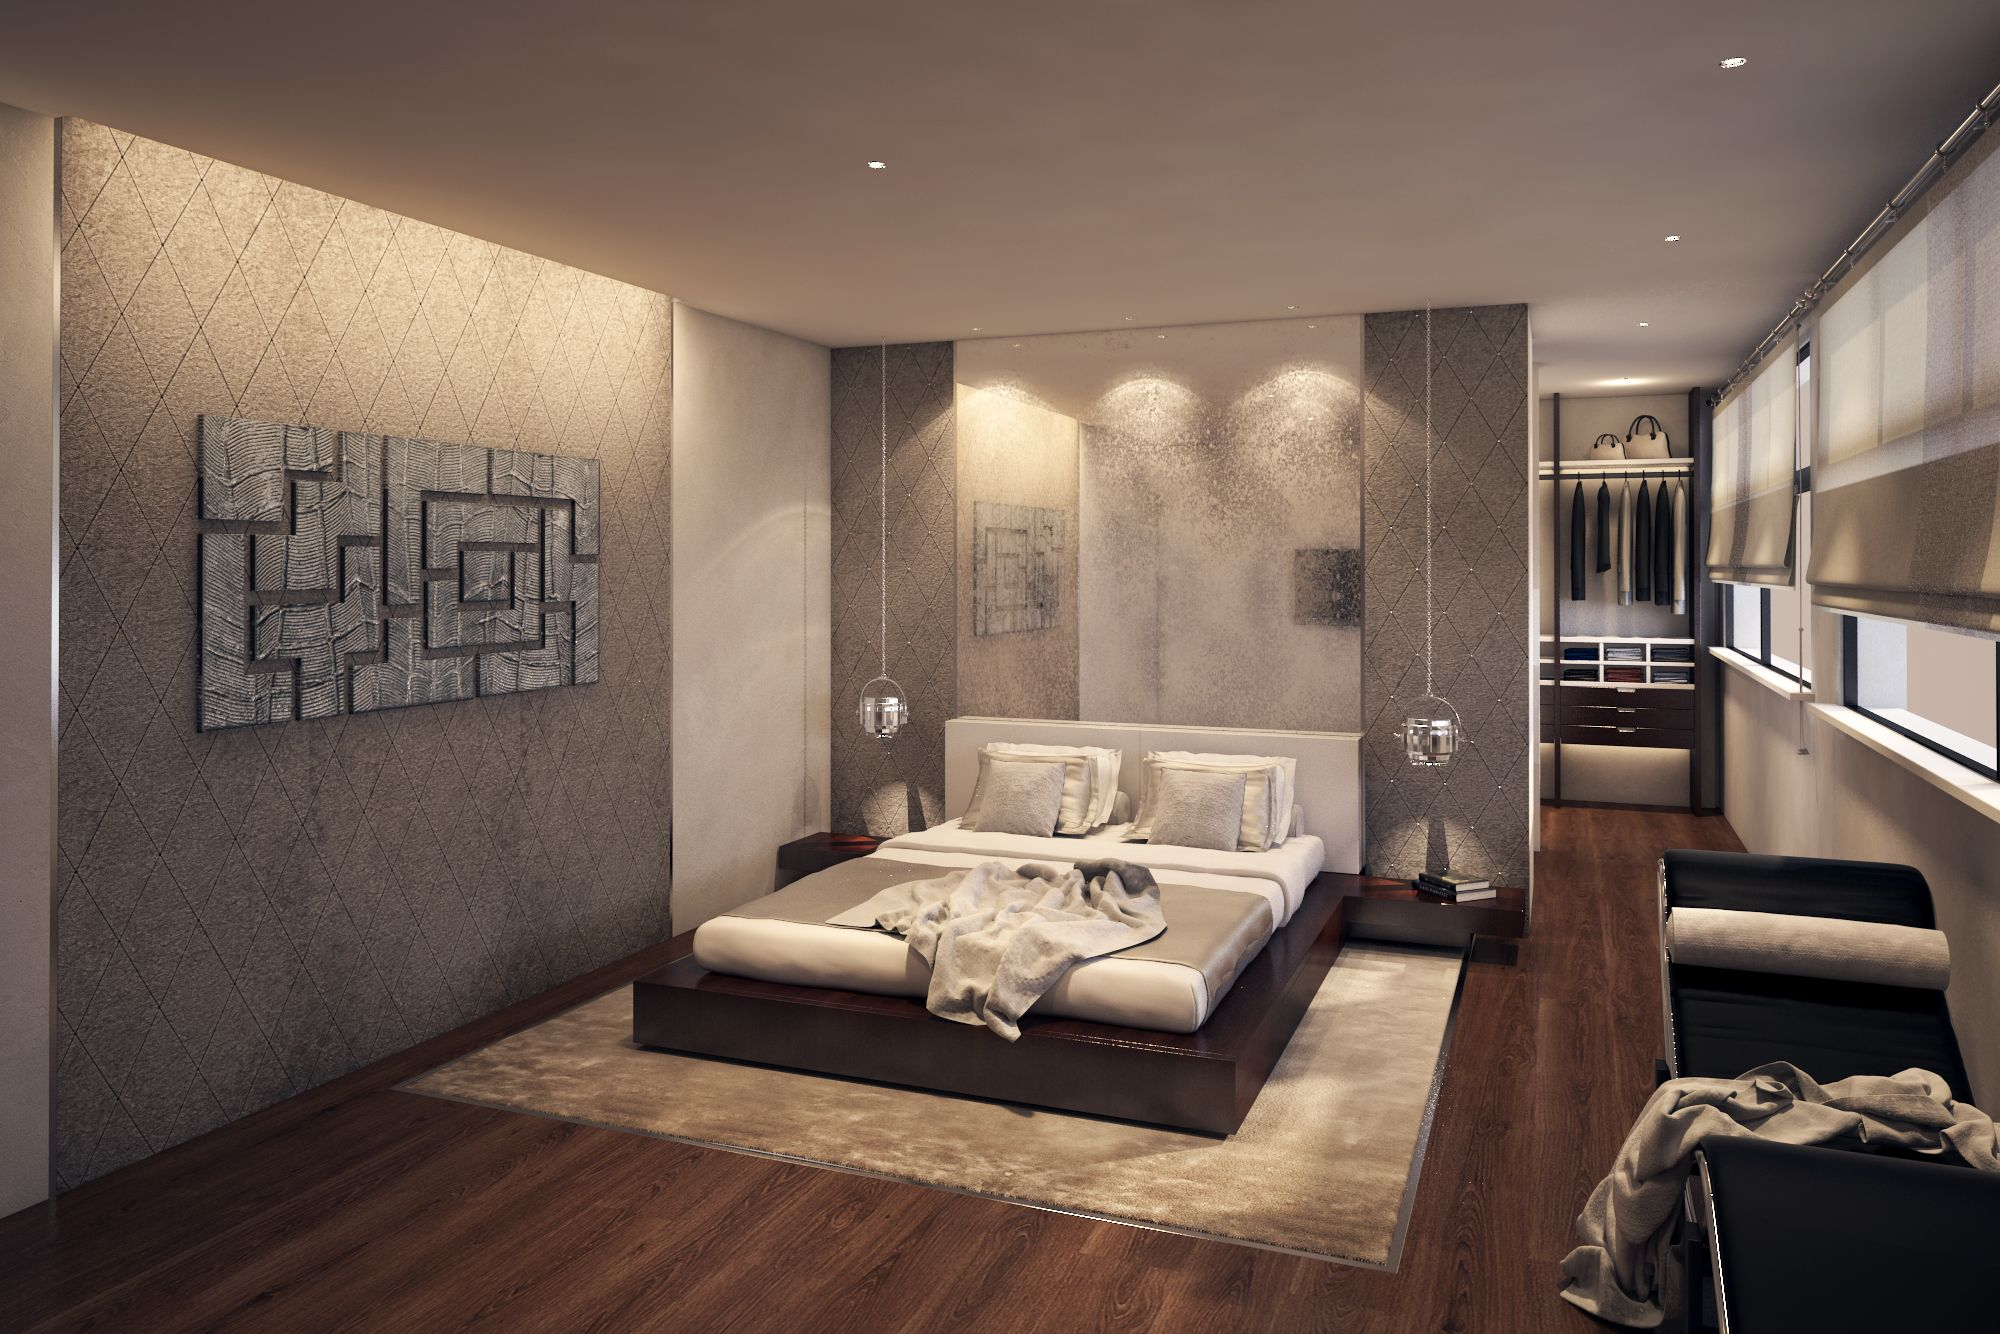 Bachelor Bedroom Ideas. 1 61 London  luxury bachelor bedroom design with walk in wardrobe antique mirror bespoke